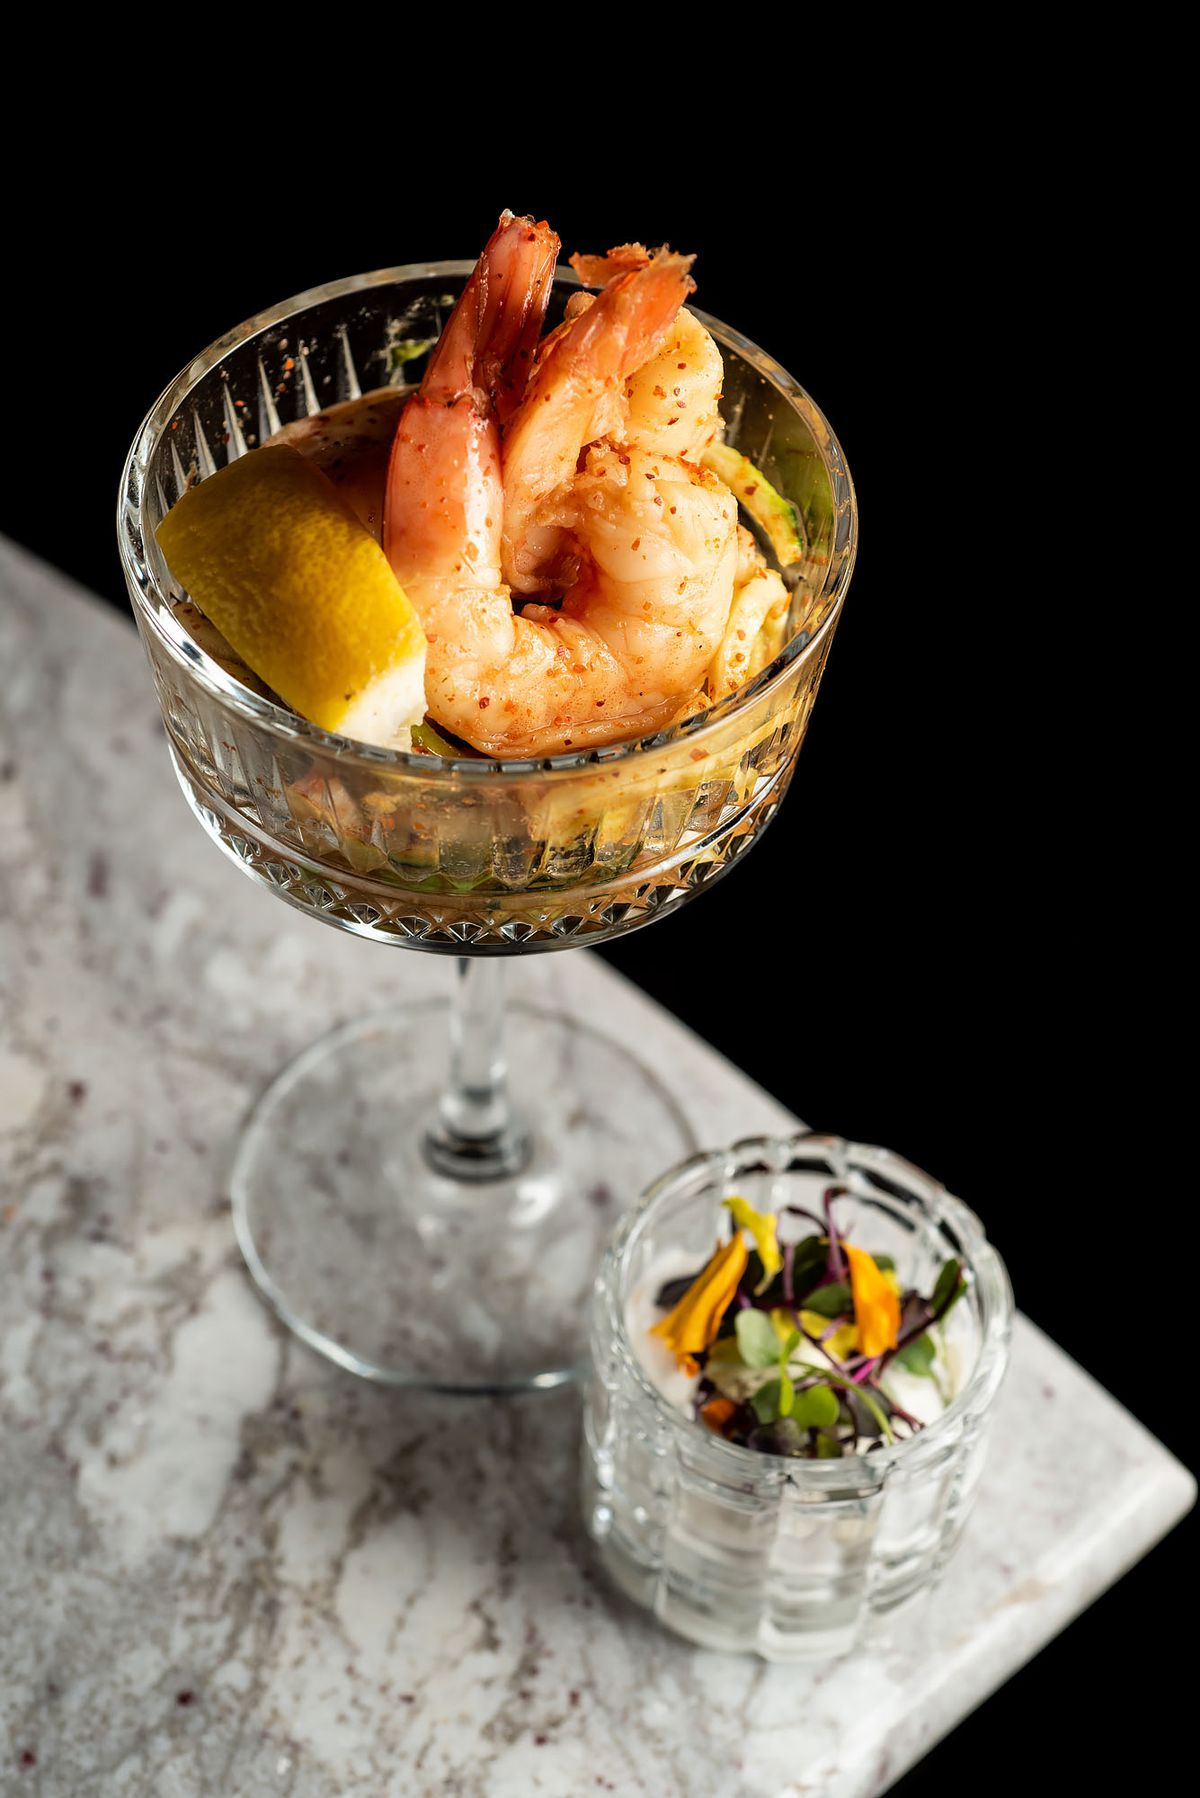 A shrimp cocktail in a tall glass, with edible flowers on the side.